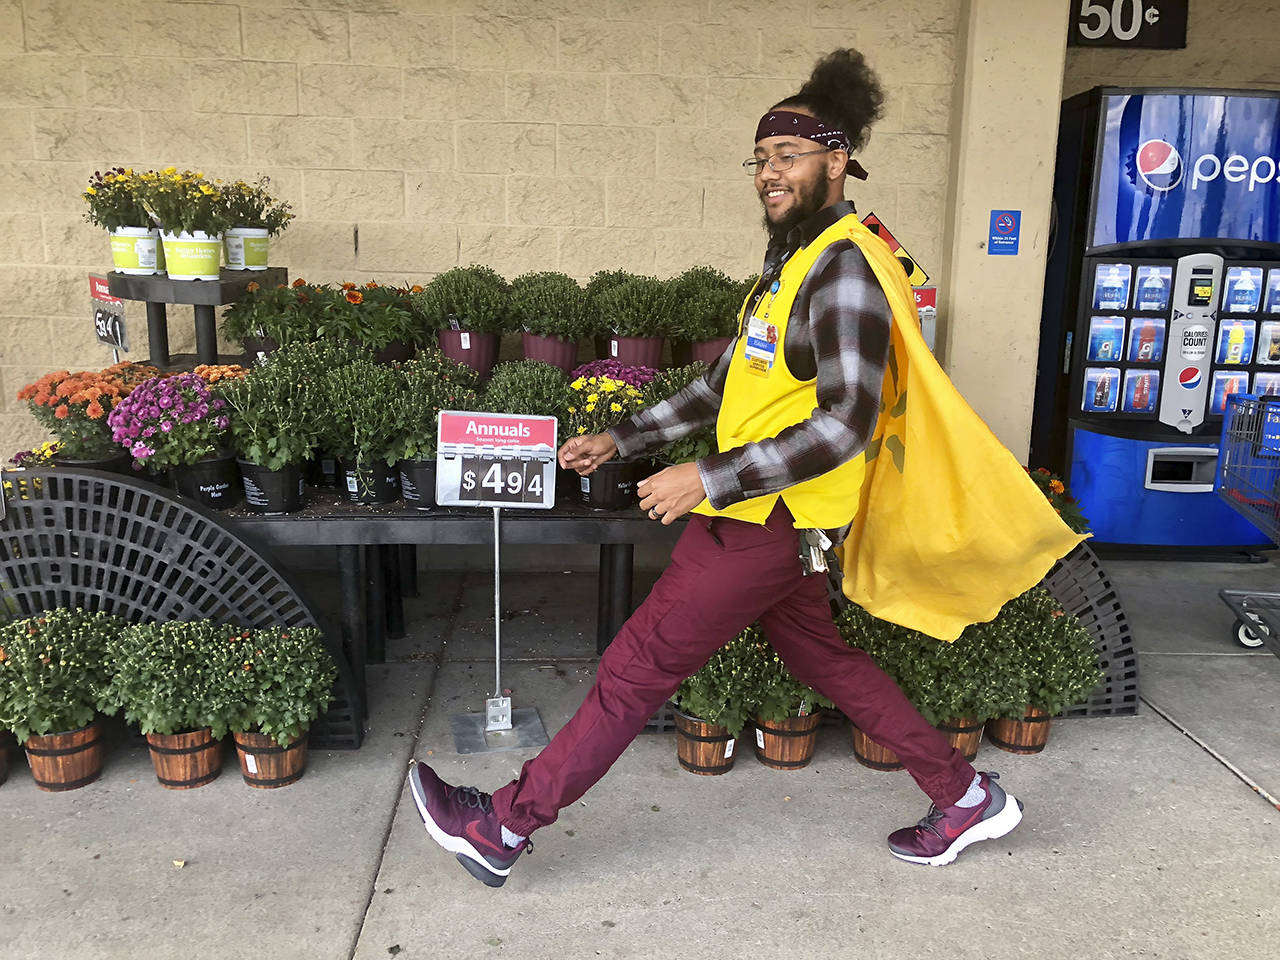 Isaiah Owens strolls past some plants at Walmart in his cape. Shoppers call him Captain Walmart, SuperWalmartman and other superhero names. (Andrea Brown / The Herald)